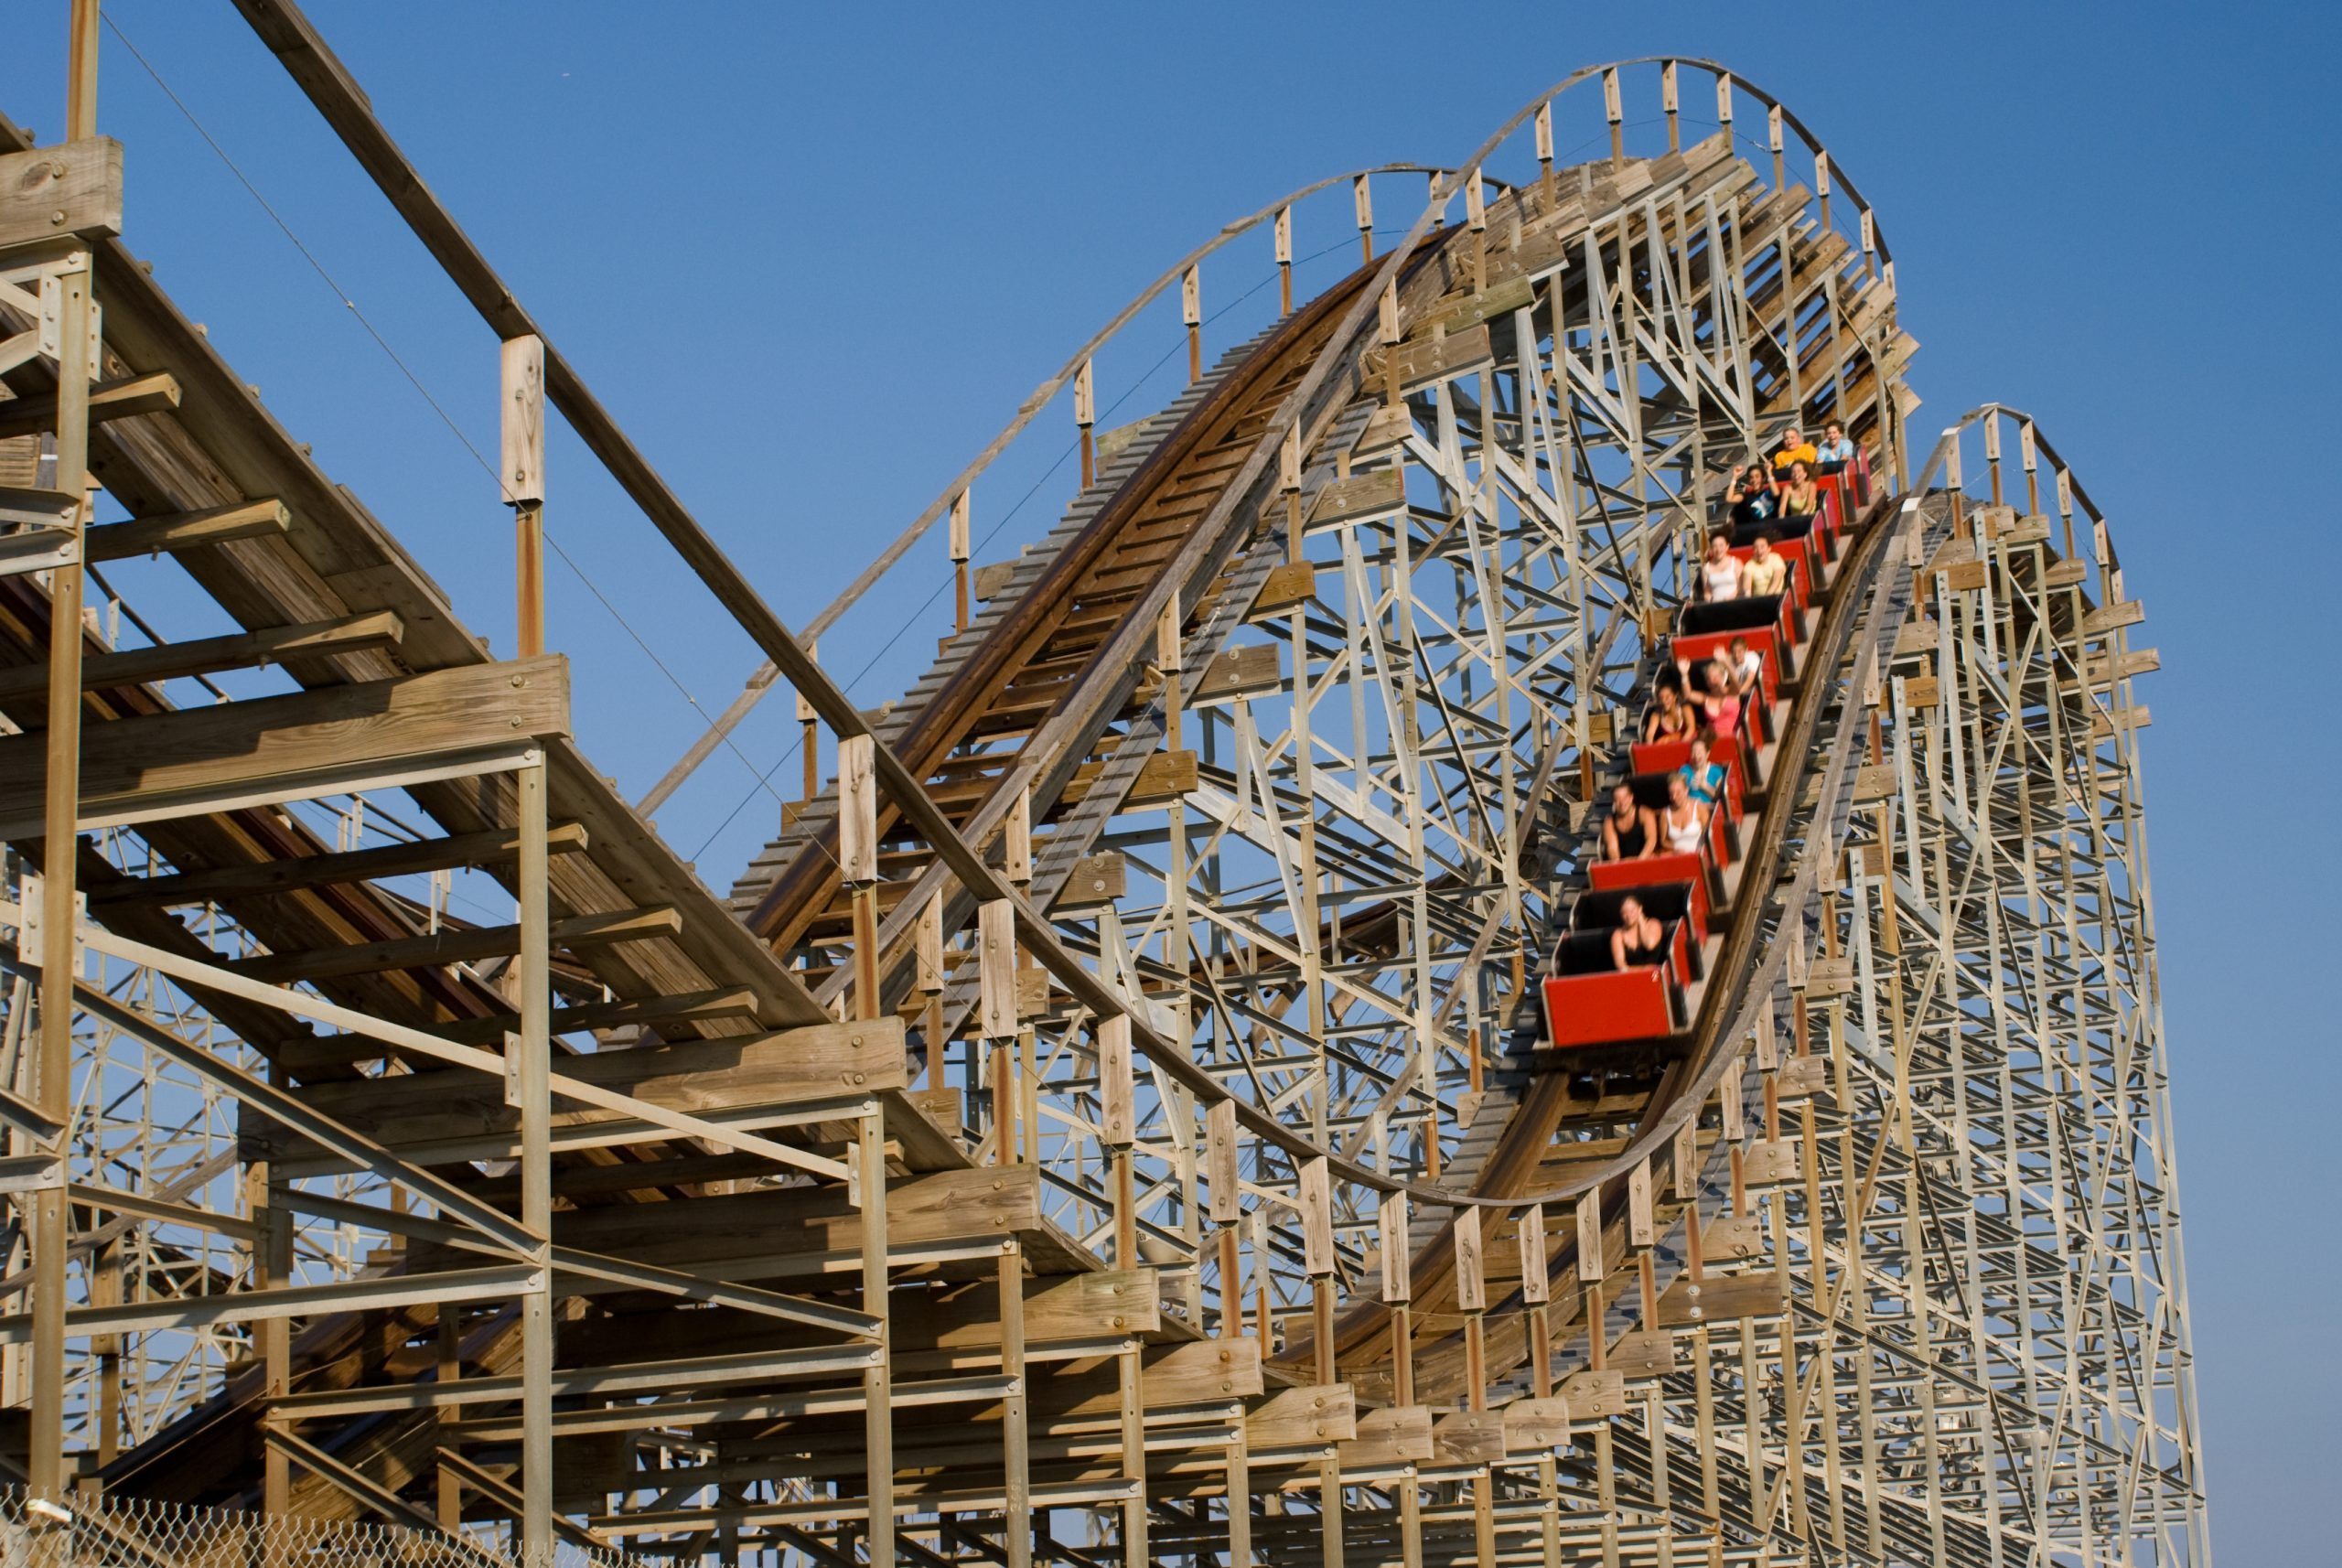 Wooden rollercoaster signifying calculated risk